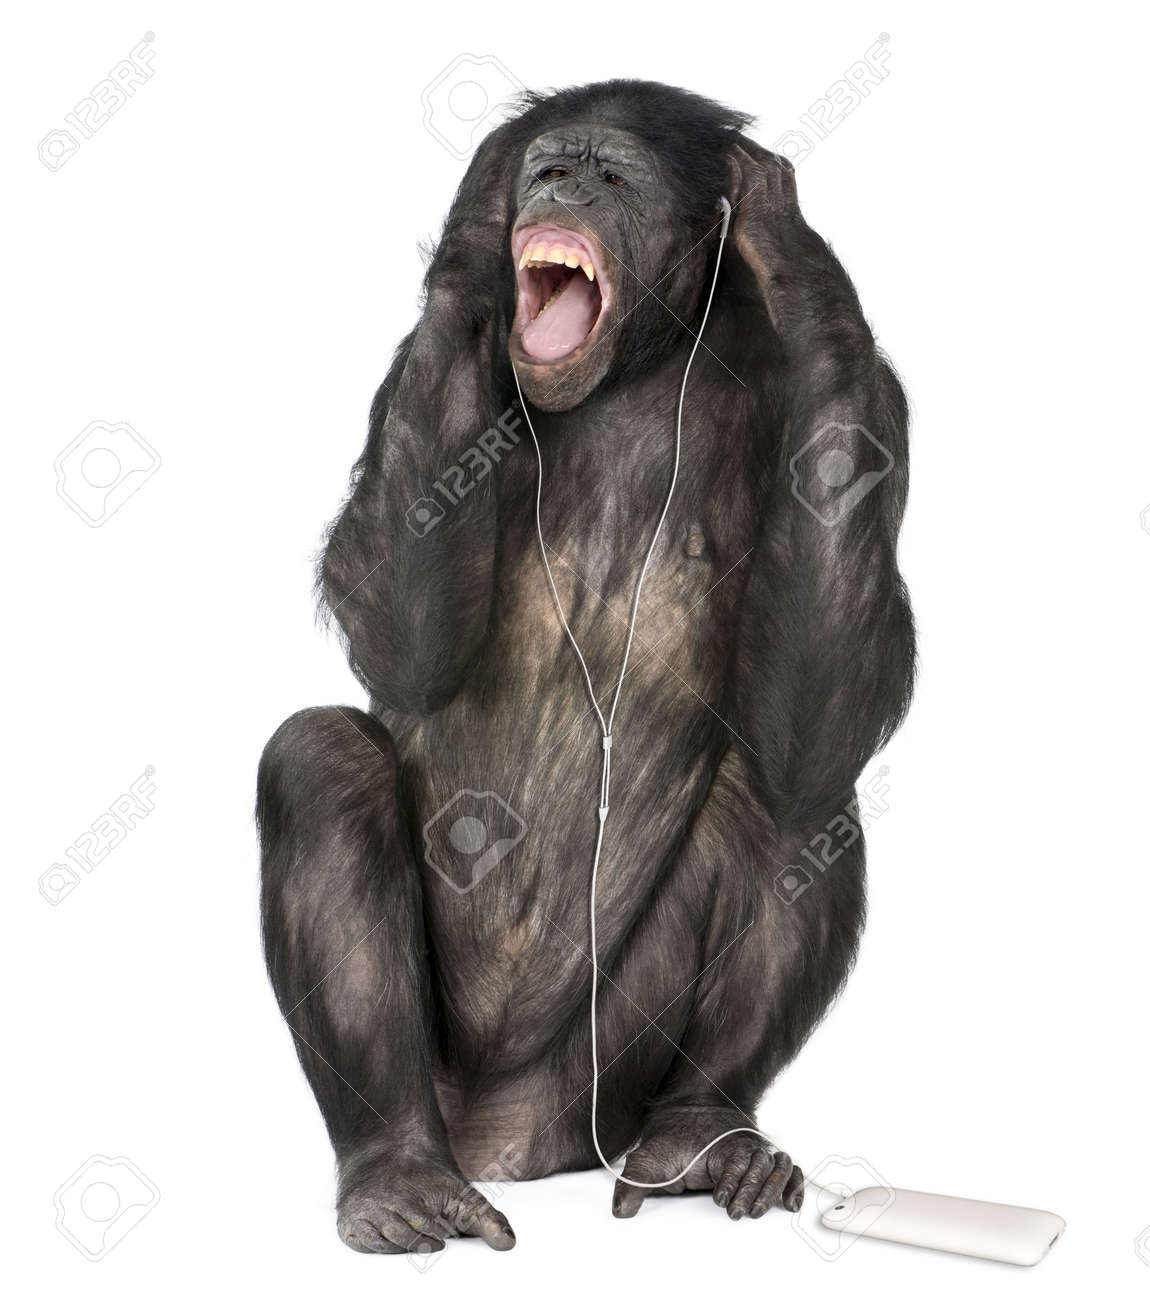 http://previews.123rf.com/images/isselee/isselee0909/isselee090900081/5497277-Mixed-breed-between-Chimpanzee-and-Bonobo-listening-to-music-20-years-old-in-front-of-white-backgrou-Stock-Photo.jpg